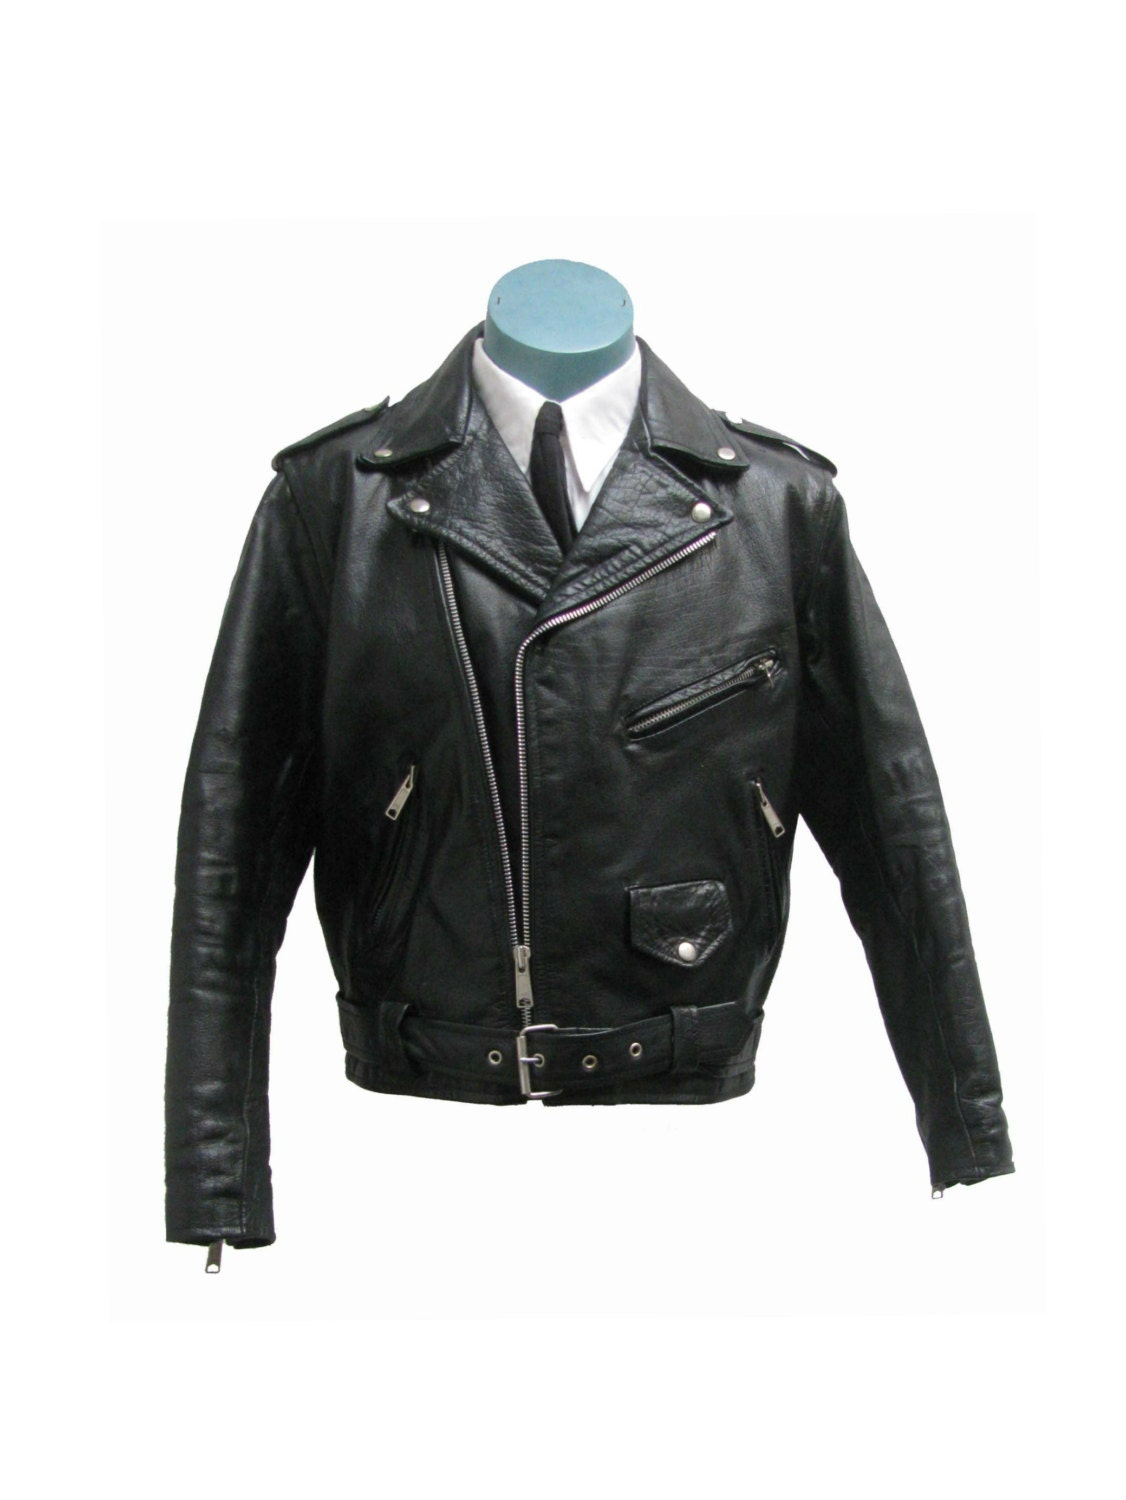 GUIDE TO THE SLIM FIT Leather JACKET. HOW TO STYLE A SLIM FIT BIKER JACKET. so it is preferred that you wear blue skinny jeans which will help you depict a nice personality. The shoes can be of matching with the blue trousers. these slim fit leather Jackets for men will last longer than expected.